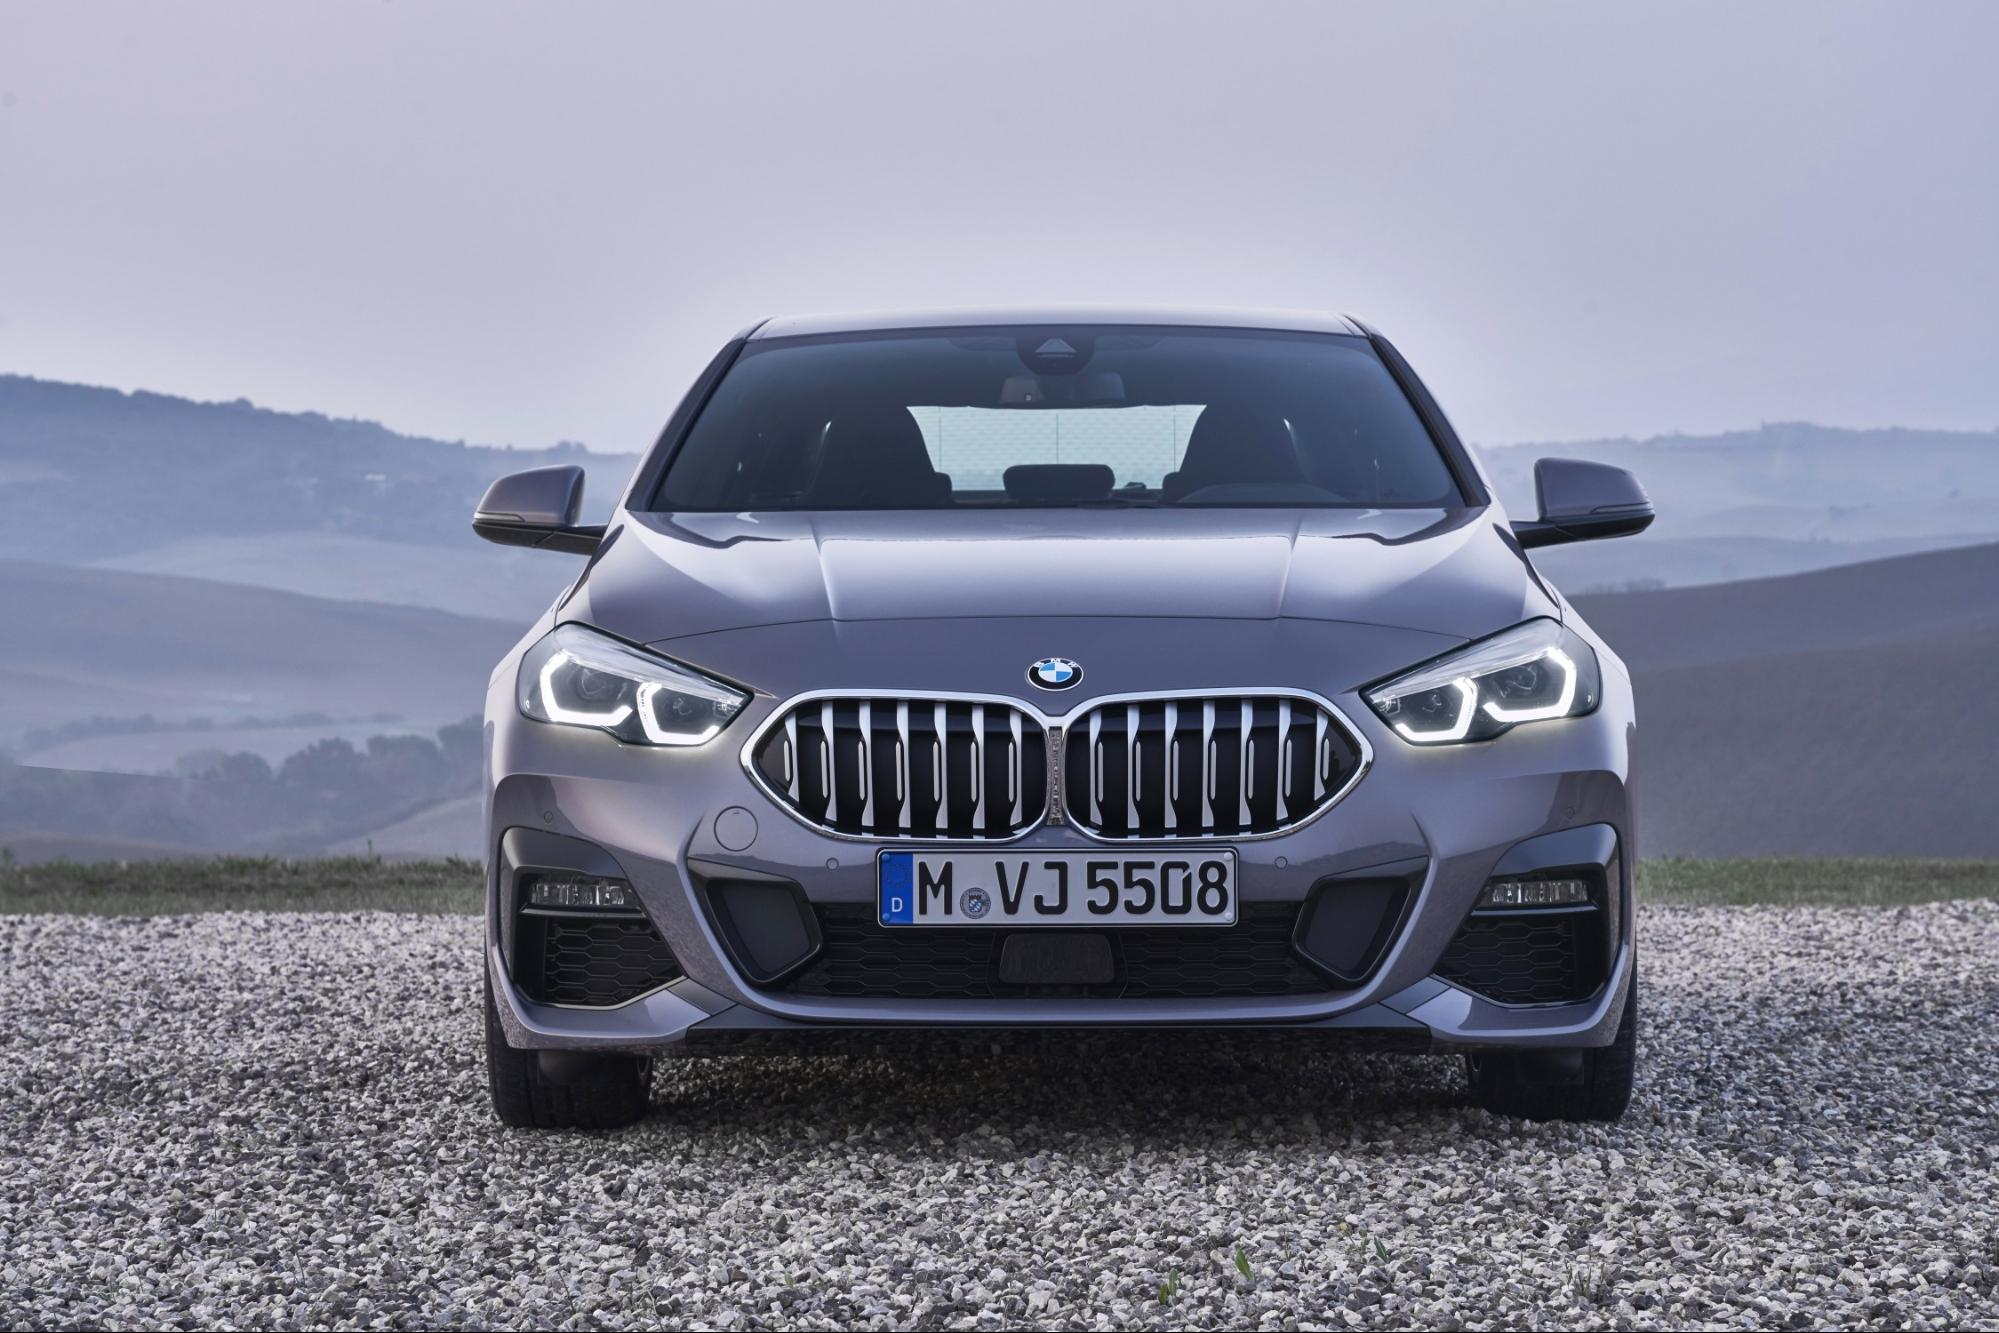 BMW 218dグラン クーペ 正面